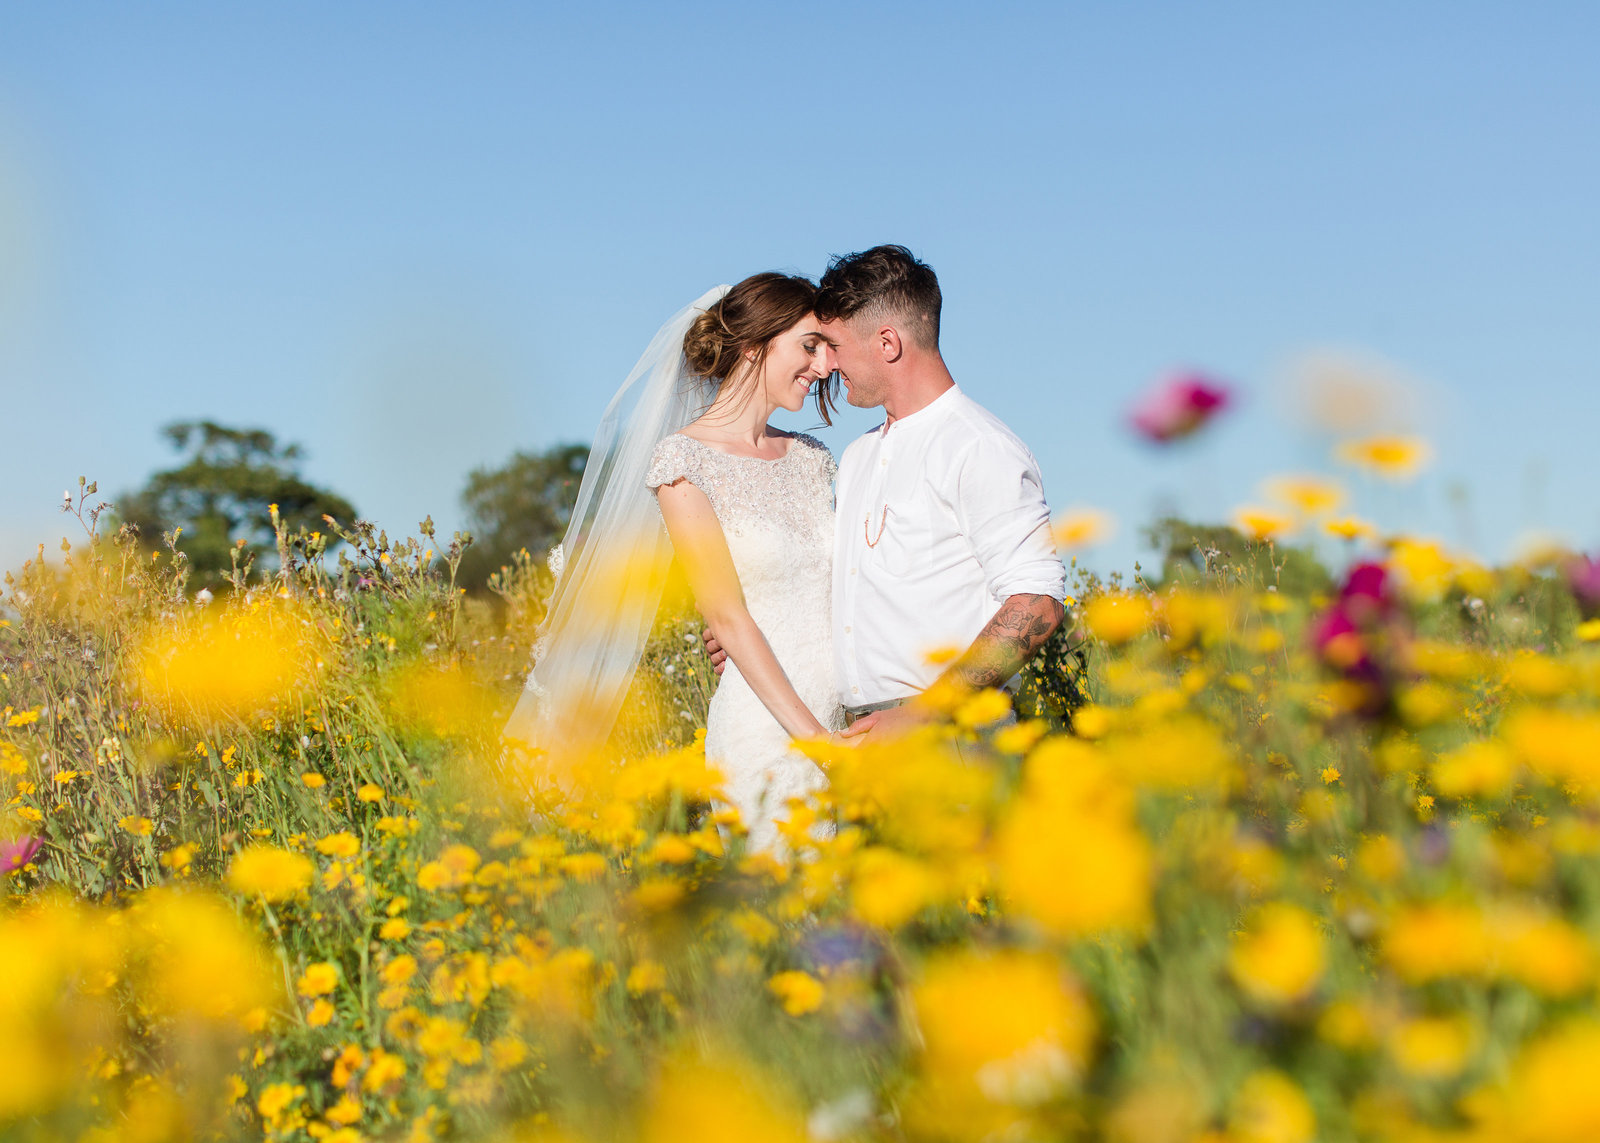 adorlee-176-wedding-photographer-chichester-west-sussex